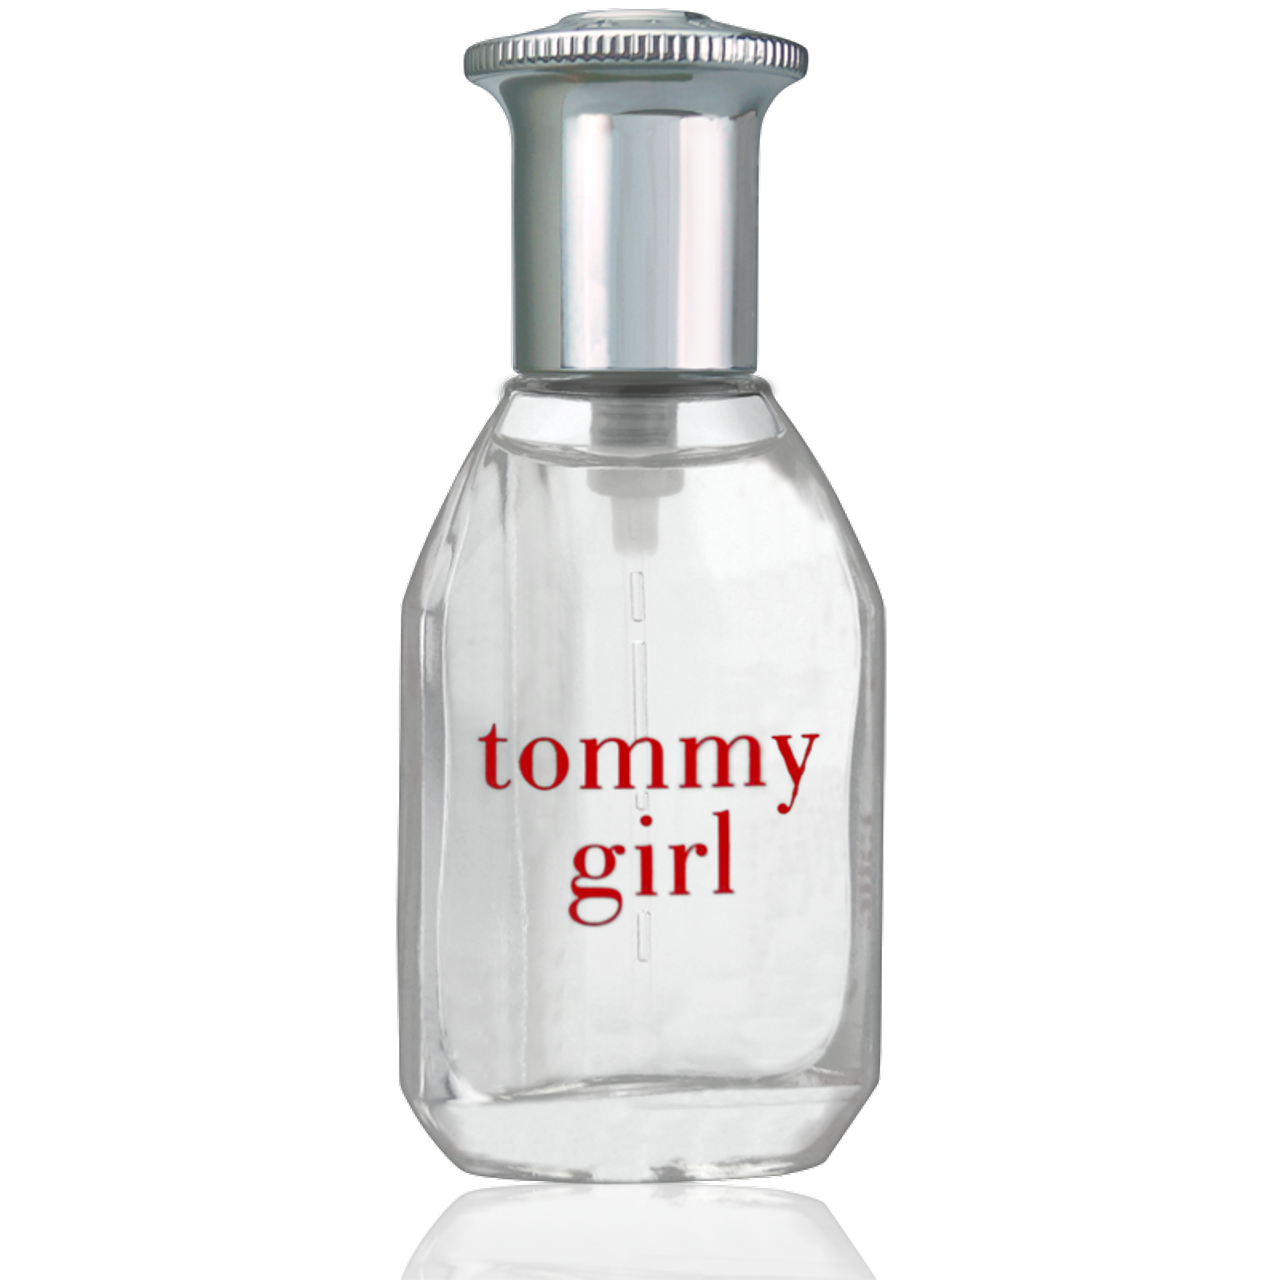 Tommy Hilfiger Tommy Girl Cologne Spray EdT 50ml